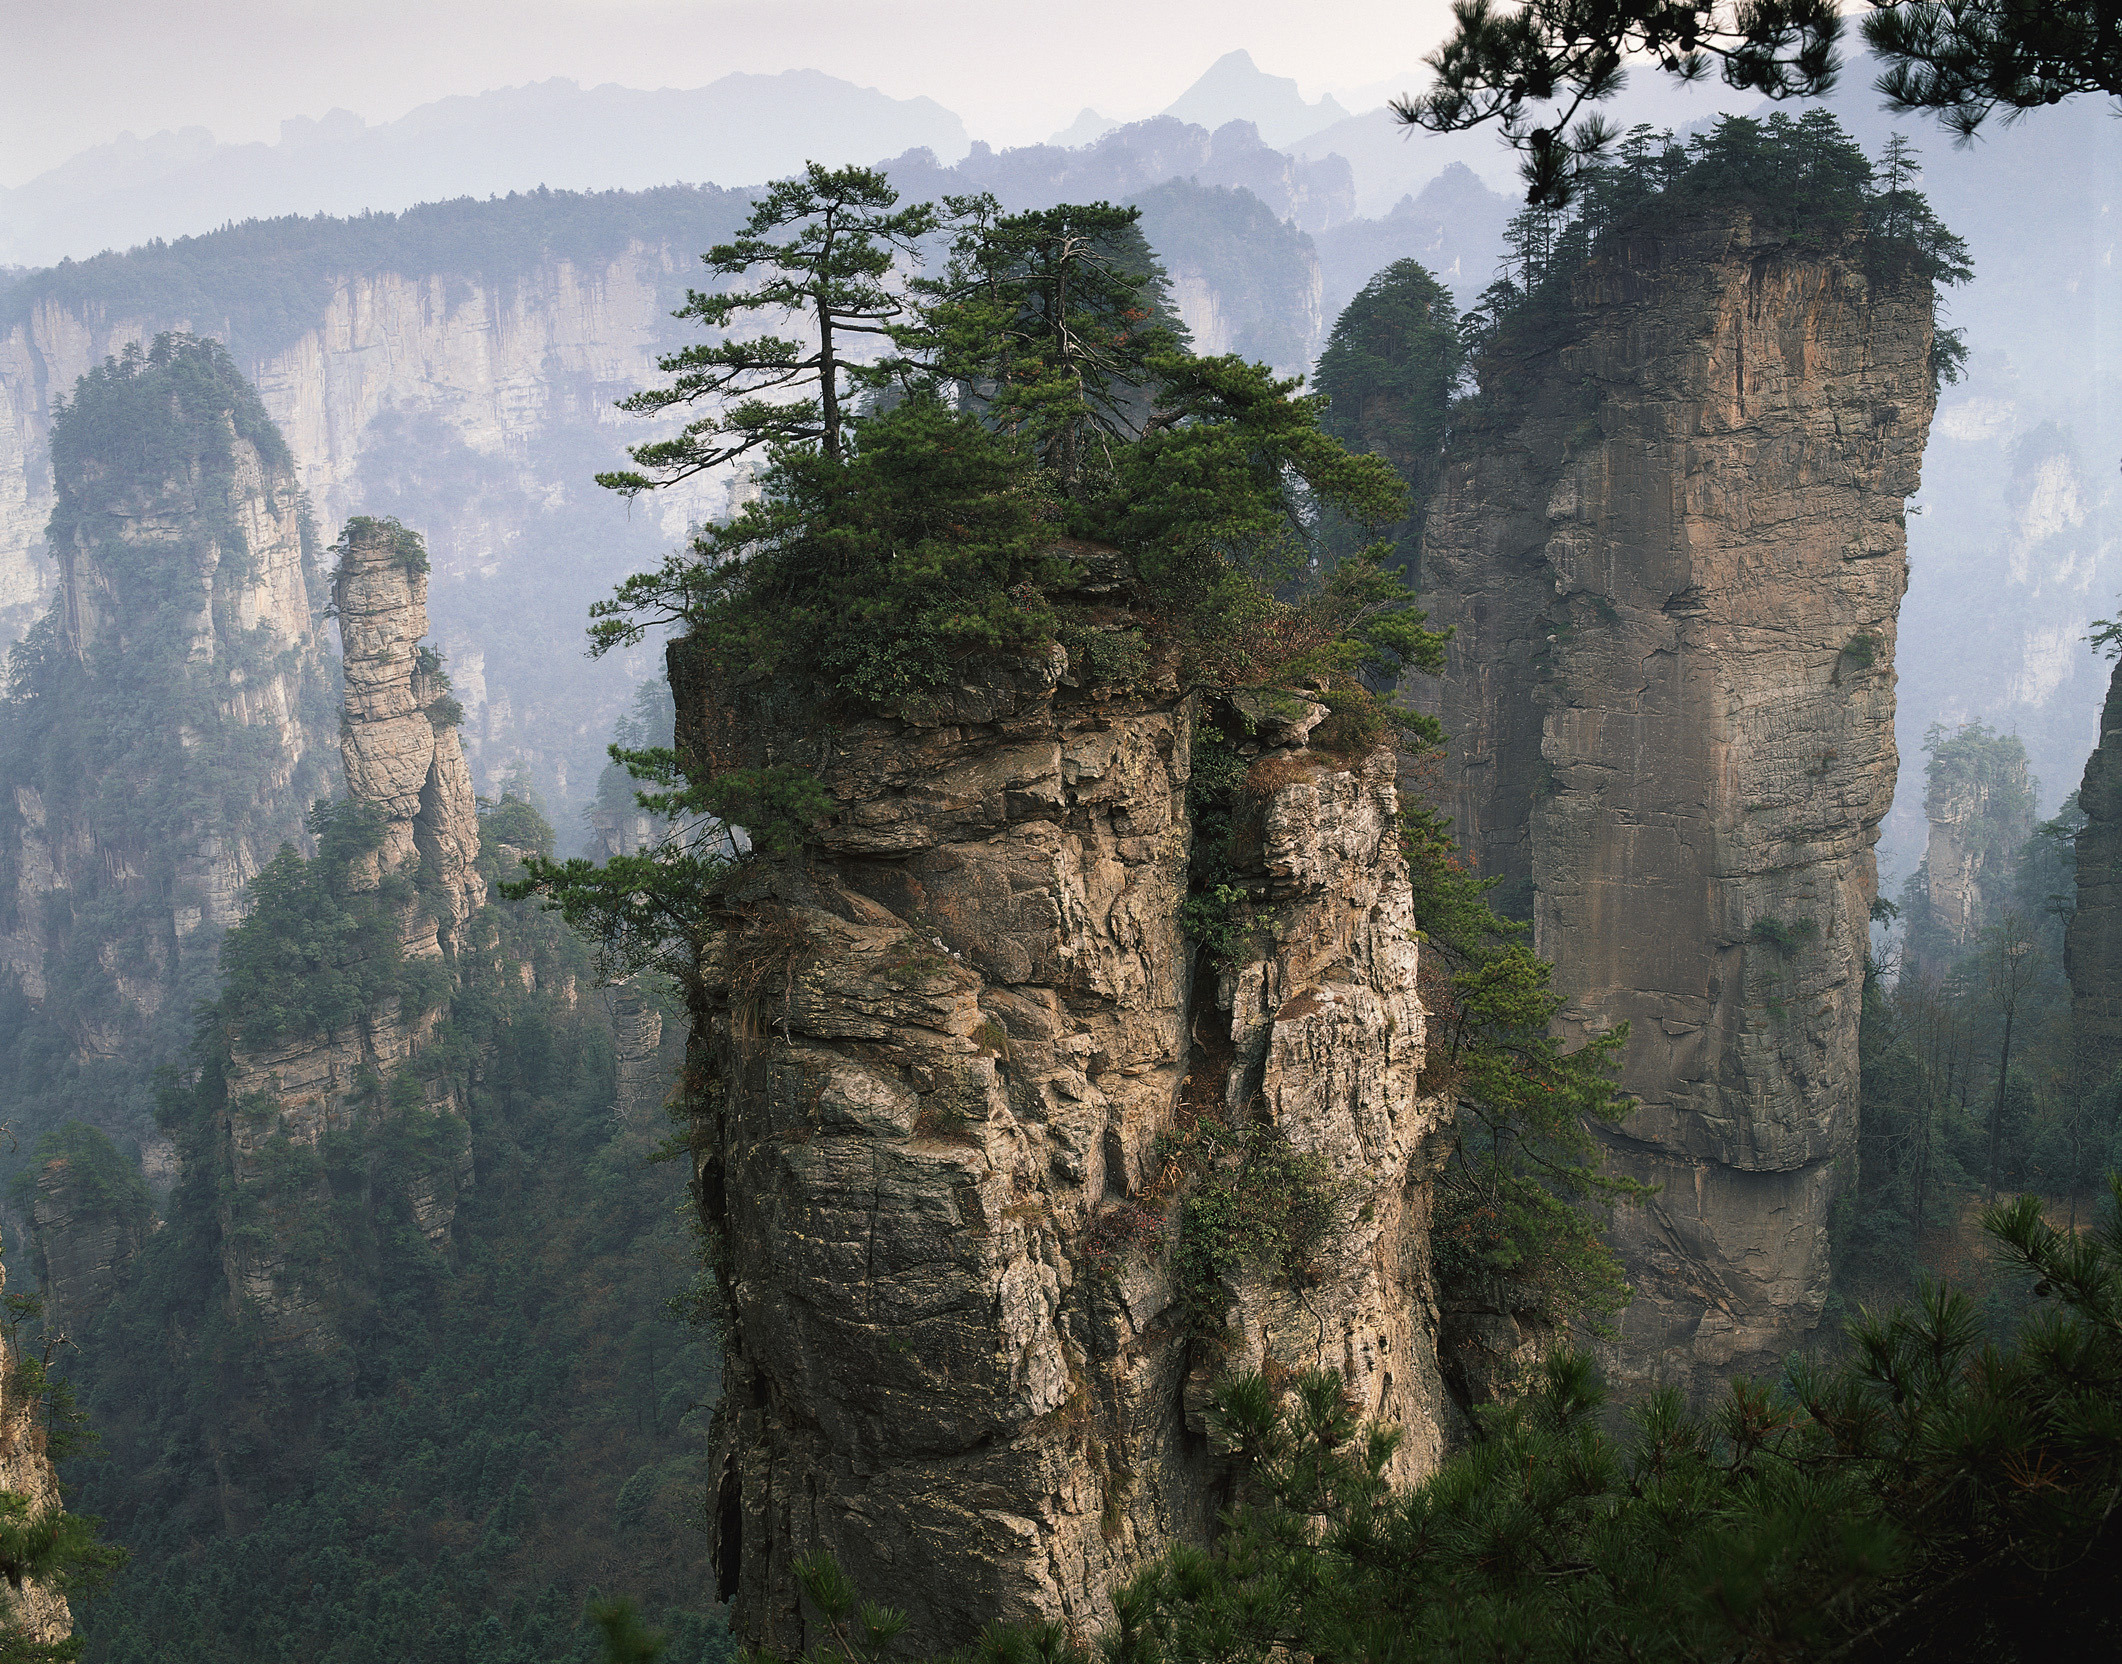 nature-mountains-rock-terrain-rocks-rocks-hills-plants-undergrowth-grass-wood-trees.jpg